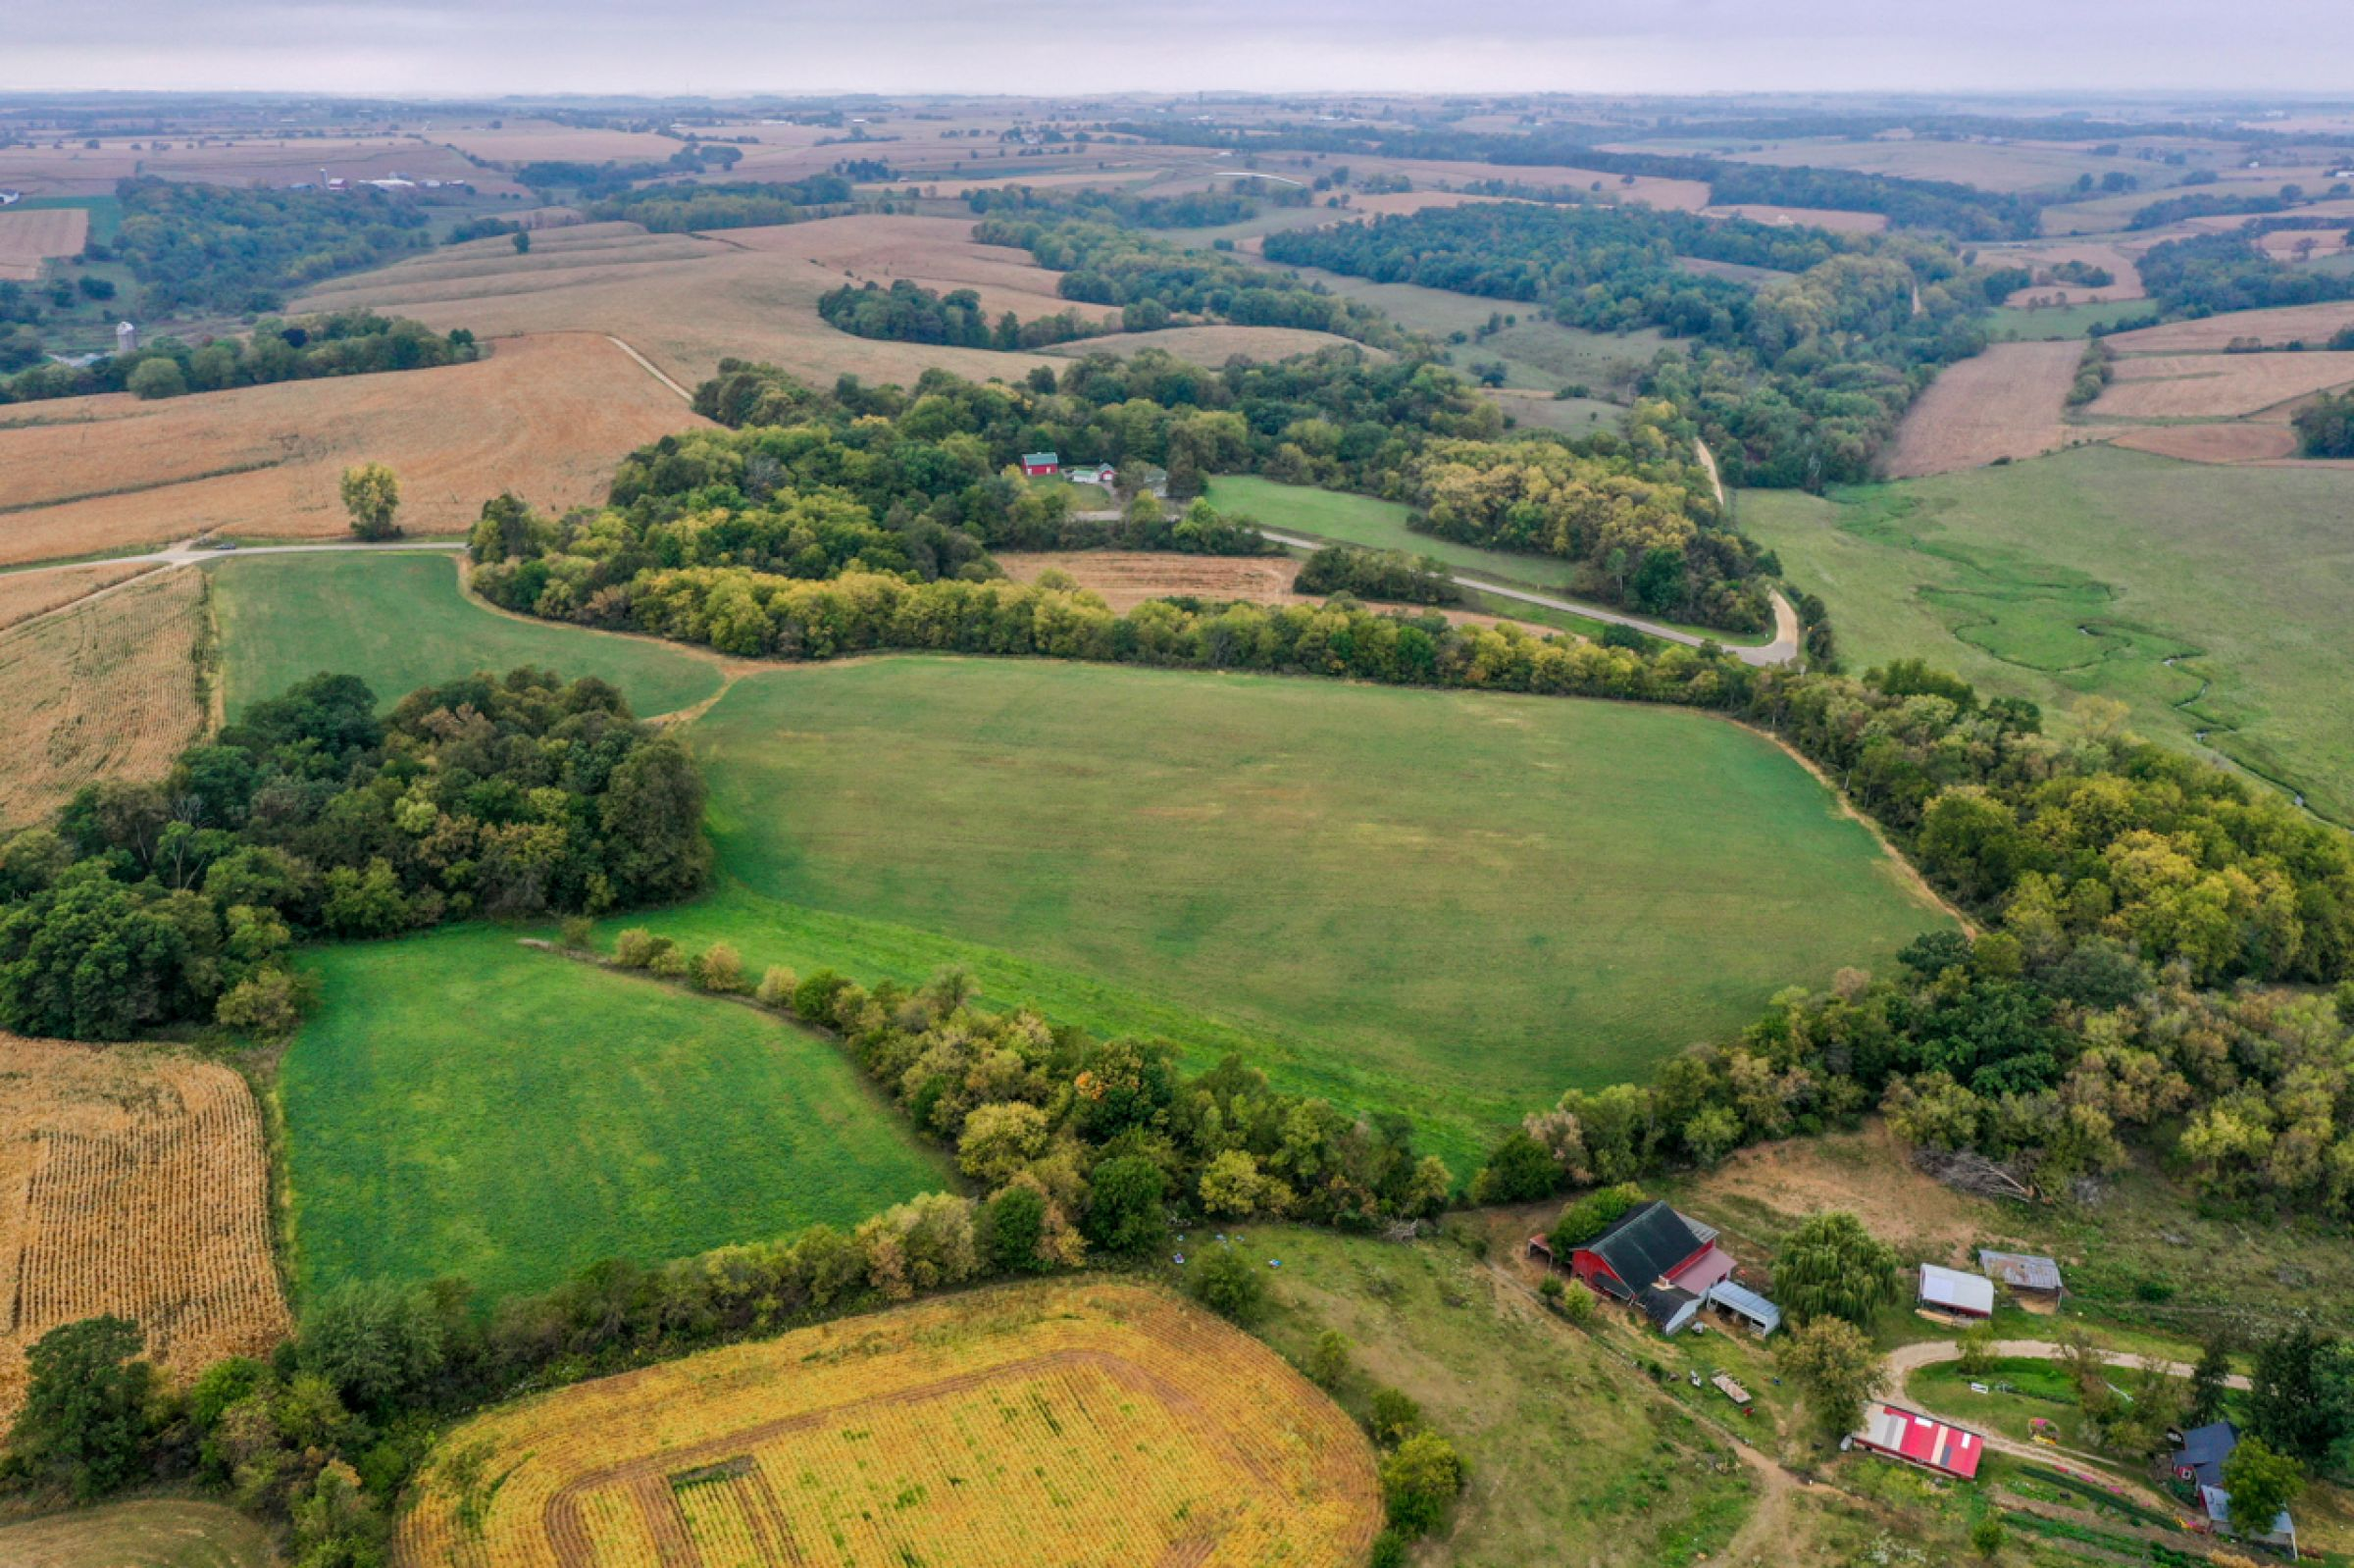 auctions-land-lafayette-county-wisconsin-138-acres-listing-number-15758-5-2021-09-21-155932.jpg